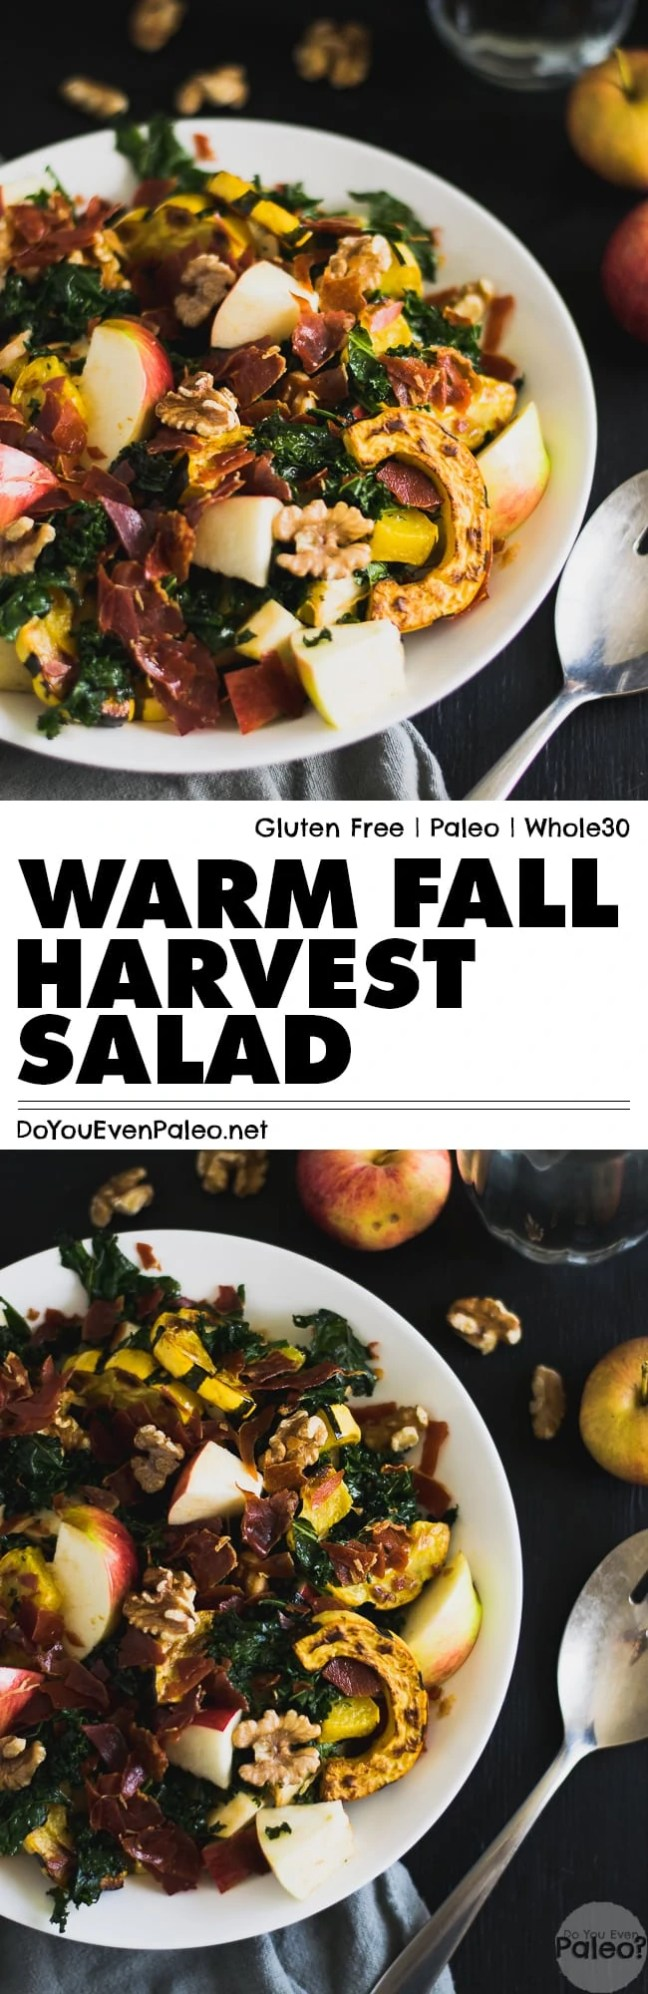 A warm fall harvest salad packed with kale, delicata squash, apples, walnuts, and crispy prosciutto—essentially a blend of sweet and salty autumn flavor. Paleo, gluten free, and Whole30! | DoYouEvenPaleo.net